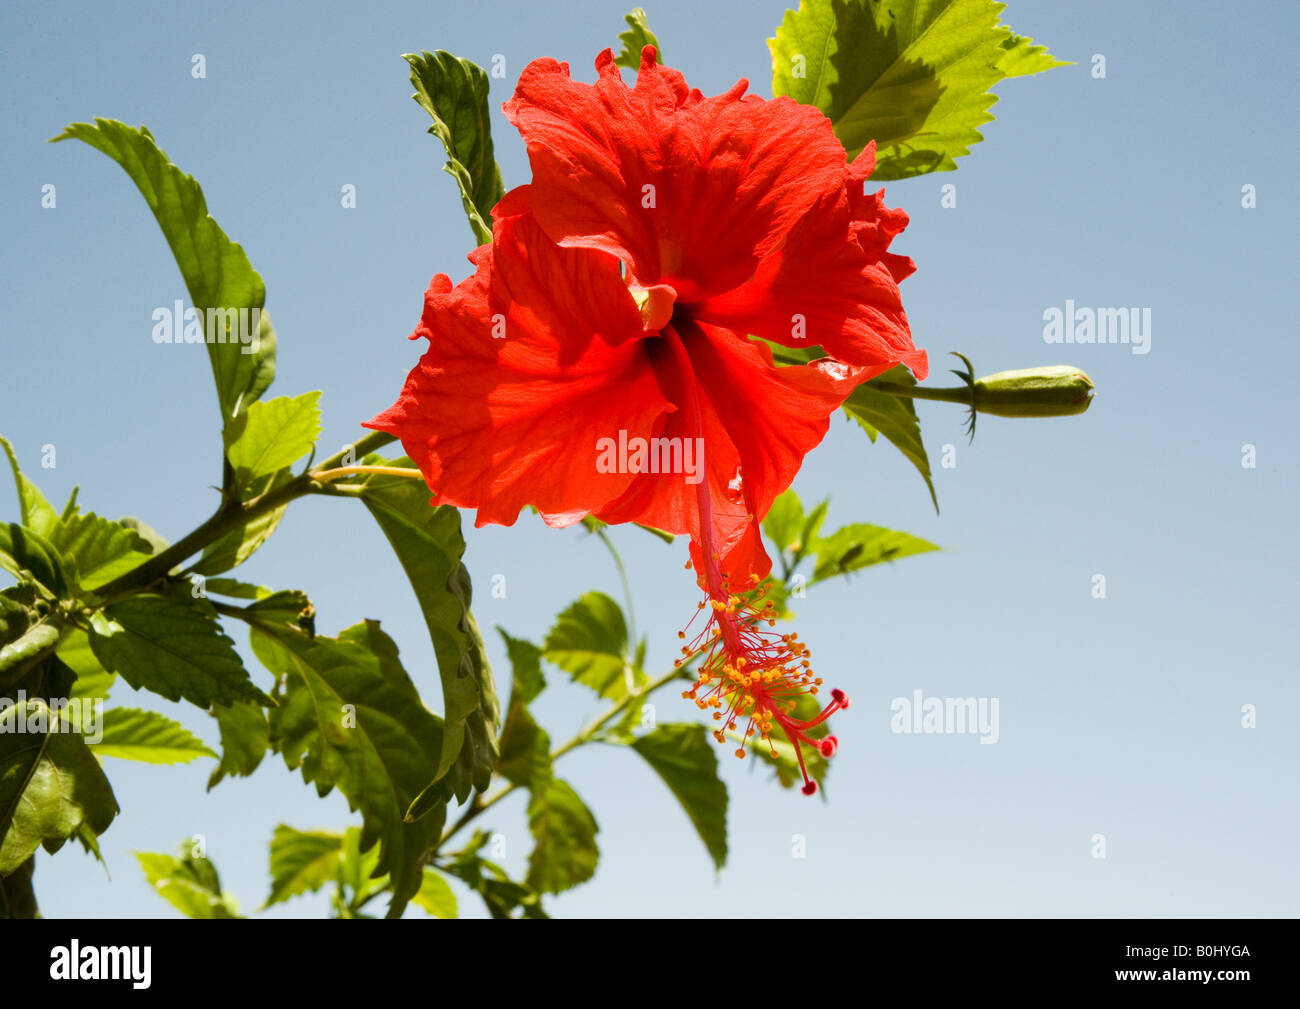 Gudhal in hindi stock photos gudhal in hindi stock images alamy red hibiscus flower at its best on a branch with dark green toothed leaves and bud izmirmasajfo